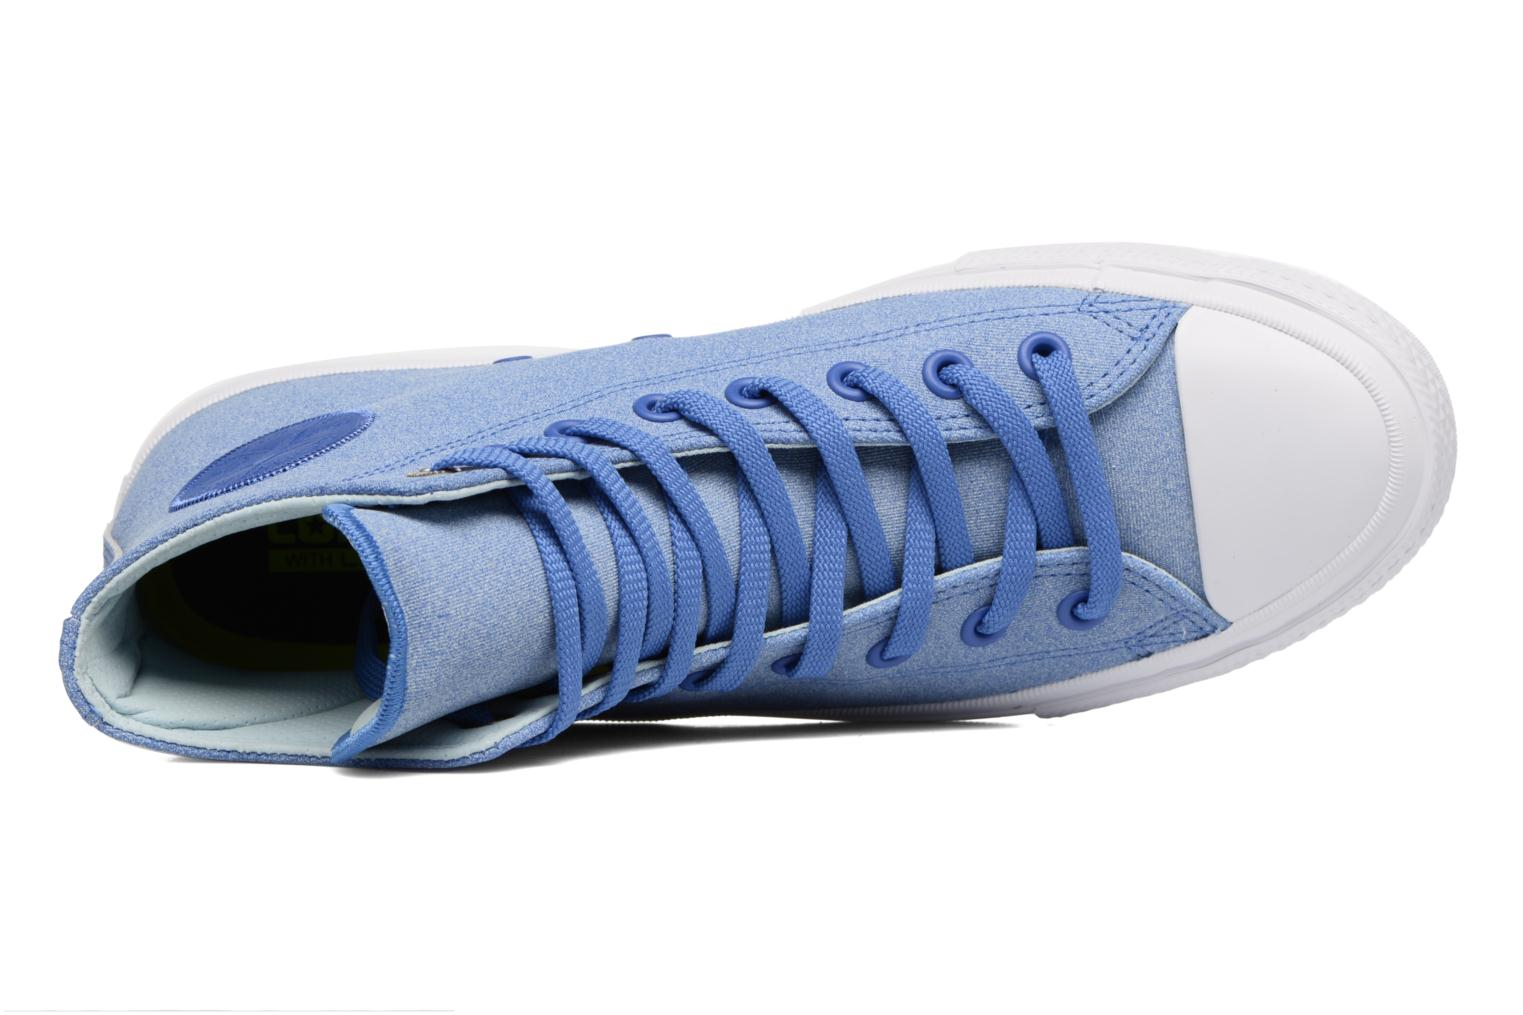 Chuck II Two-Tone Leather Hi M Oxygen Blue/Polar Blue/White